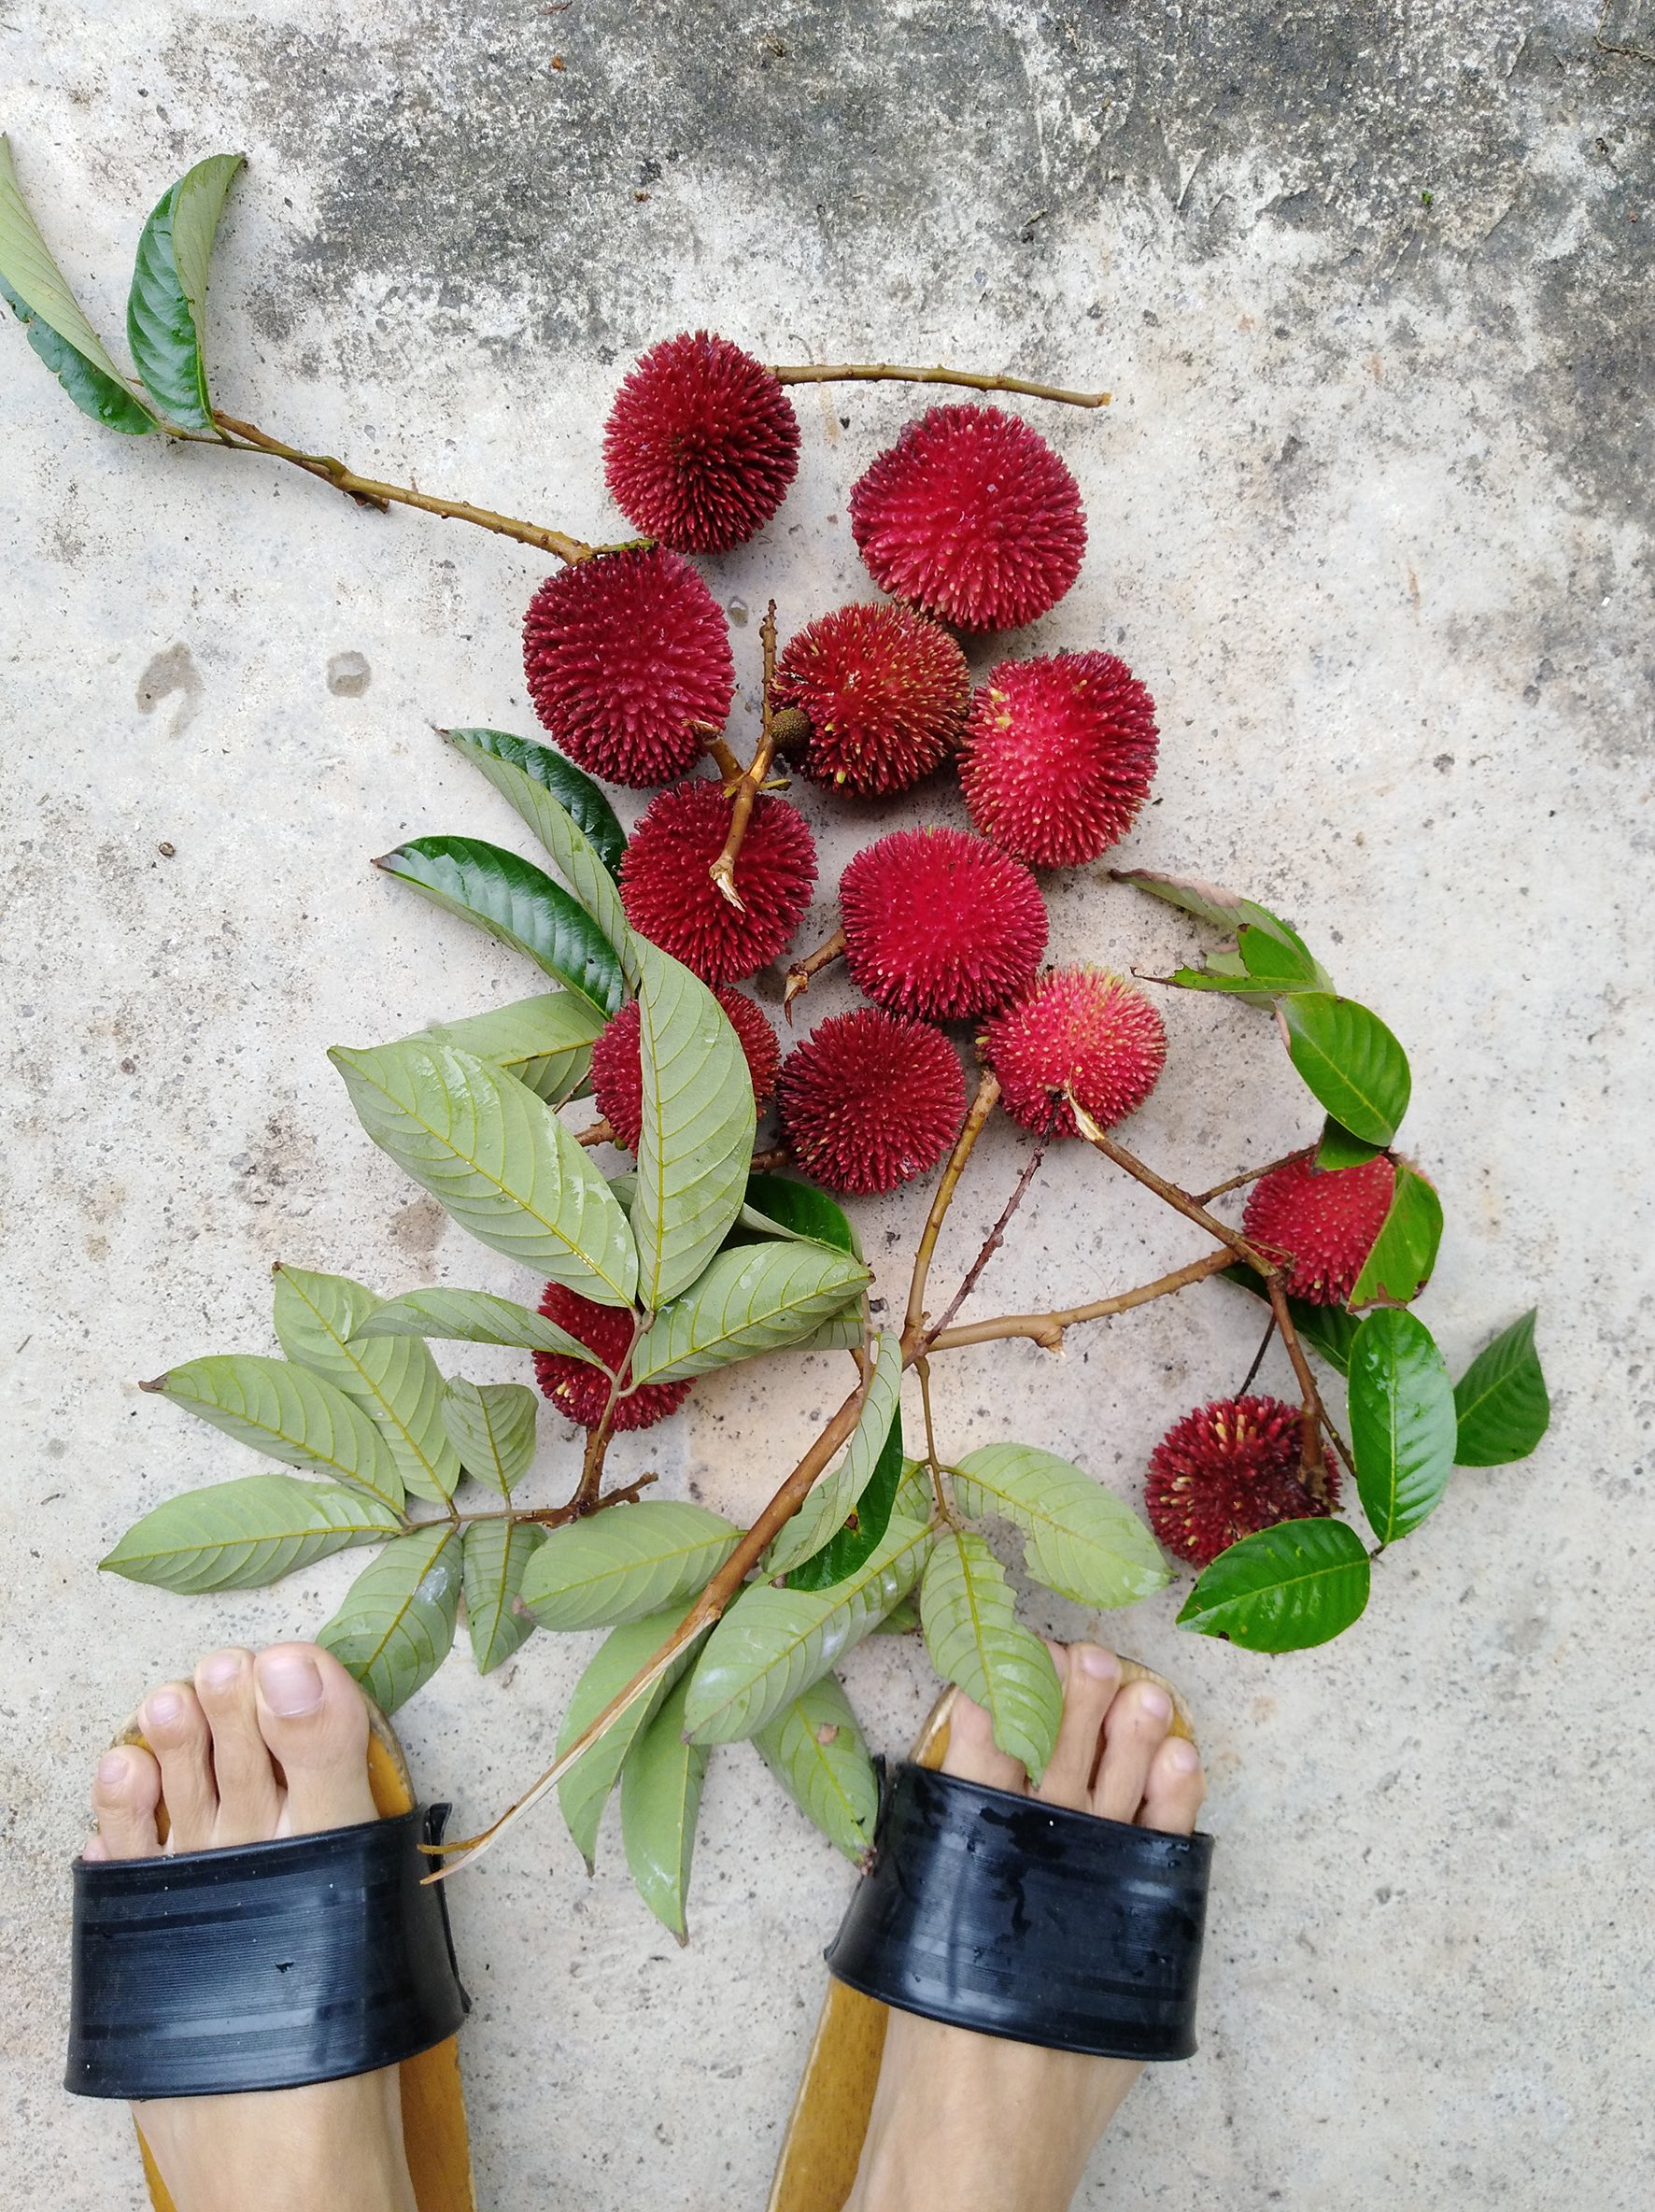 Harvesting pulasan (a premium grade of rambutan)! We share them with our neighbours in exchange for their durians.